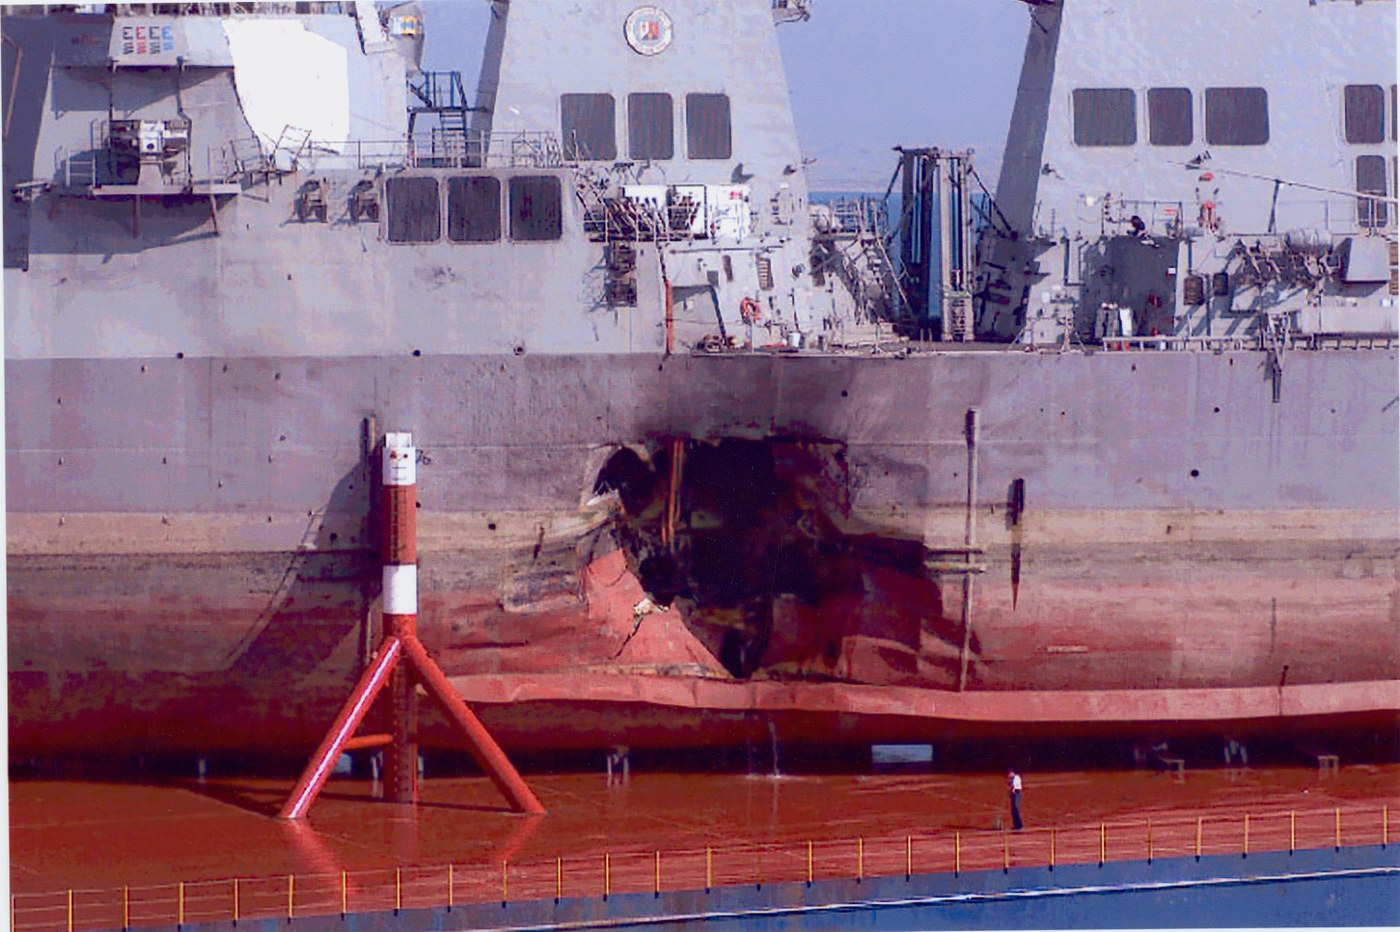 FBI photo of the damaged hull of the USS Cole.